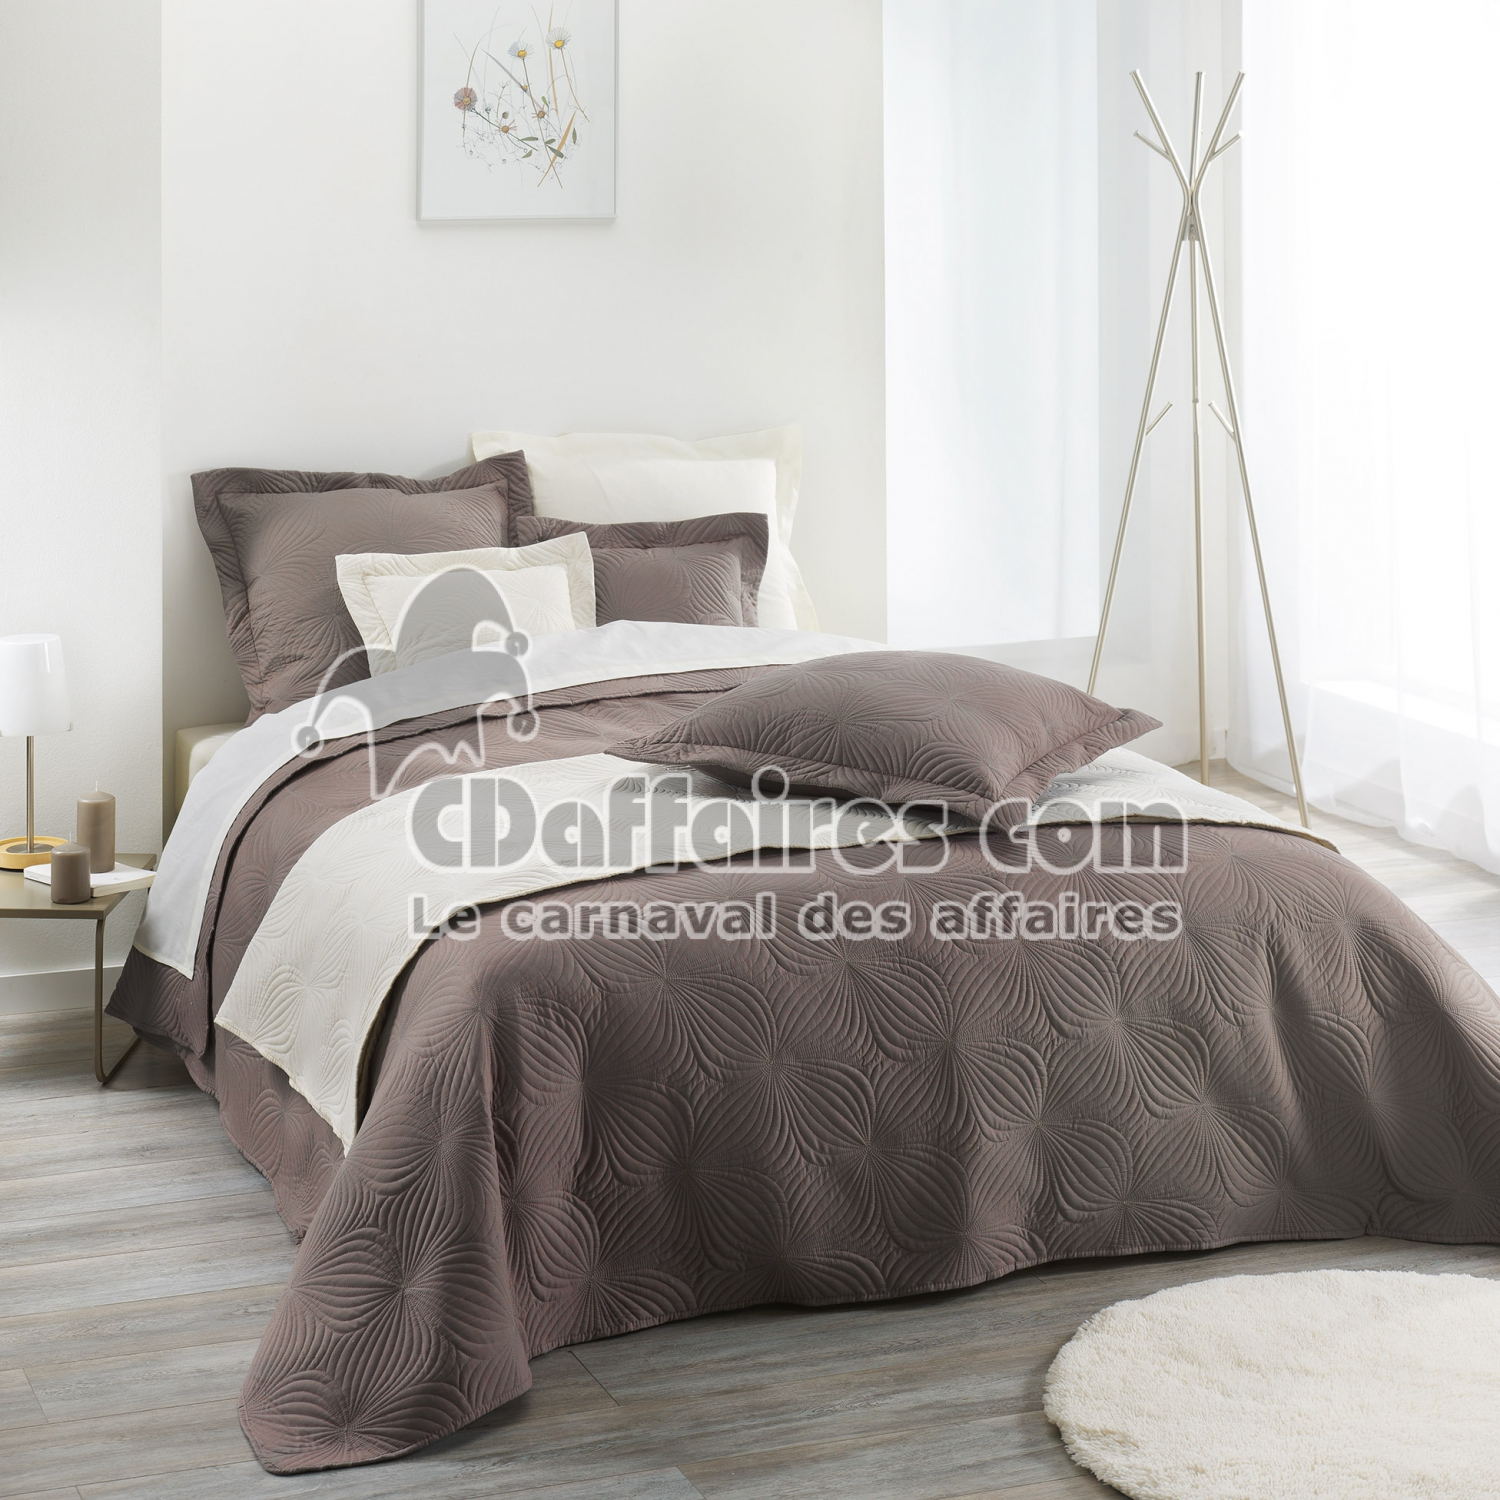 couvre lit 2 pers matelasse 220 x 240 cm microfibre unie florencia taupe cdaffaires. Black Bedroom Furniture Sets. Home Design Ideas